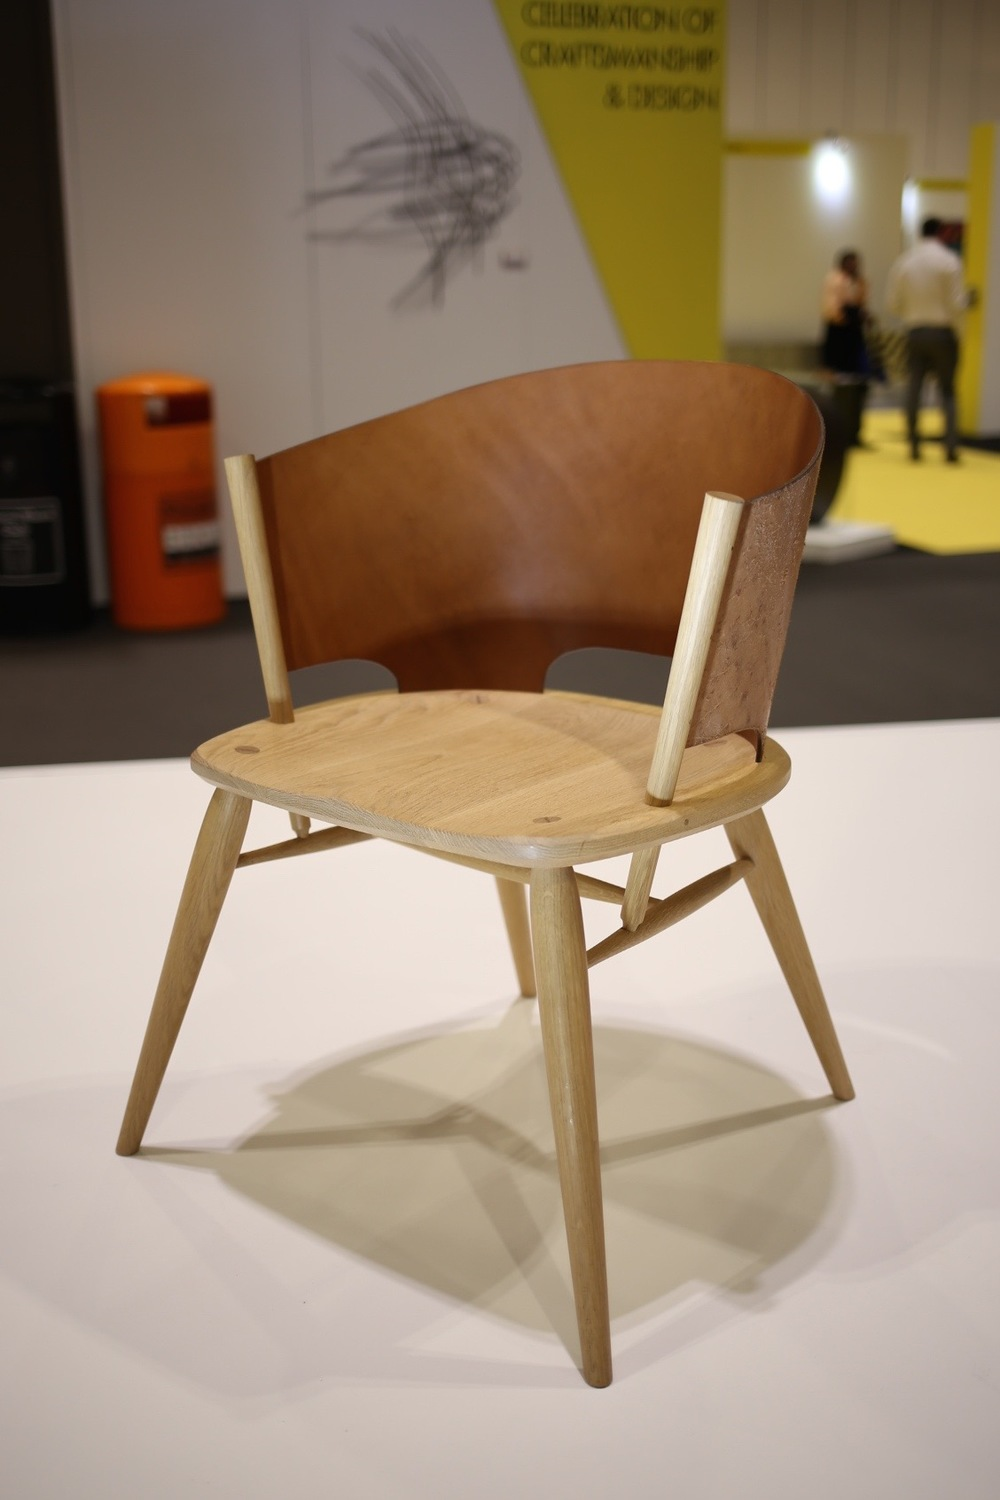 Hamylin chair by Gareth Neal - The New Craftsmen